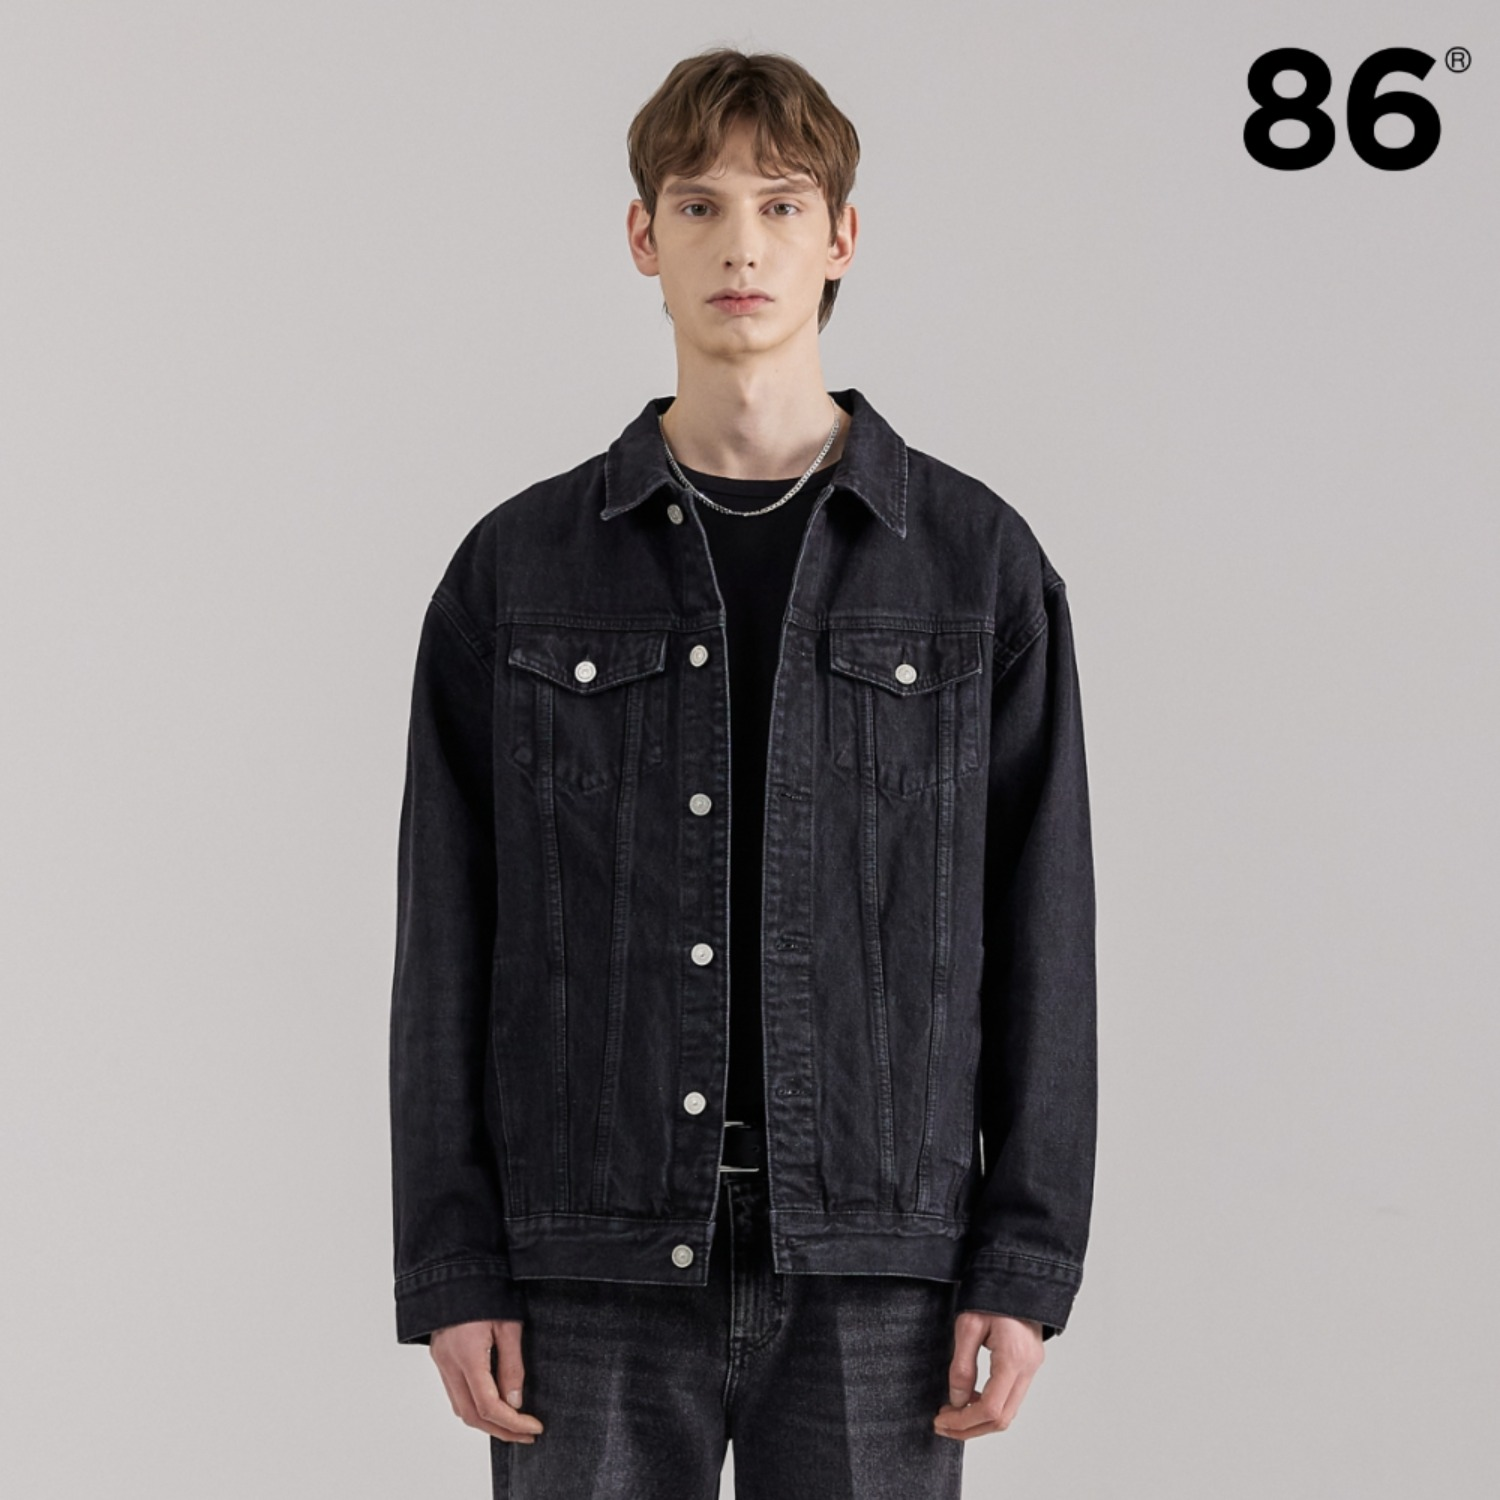 2724 Washing denim jacket (Black)_10th Reorder